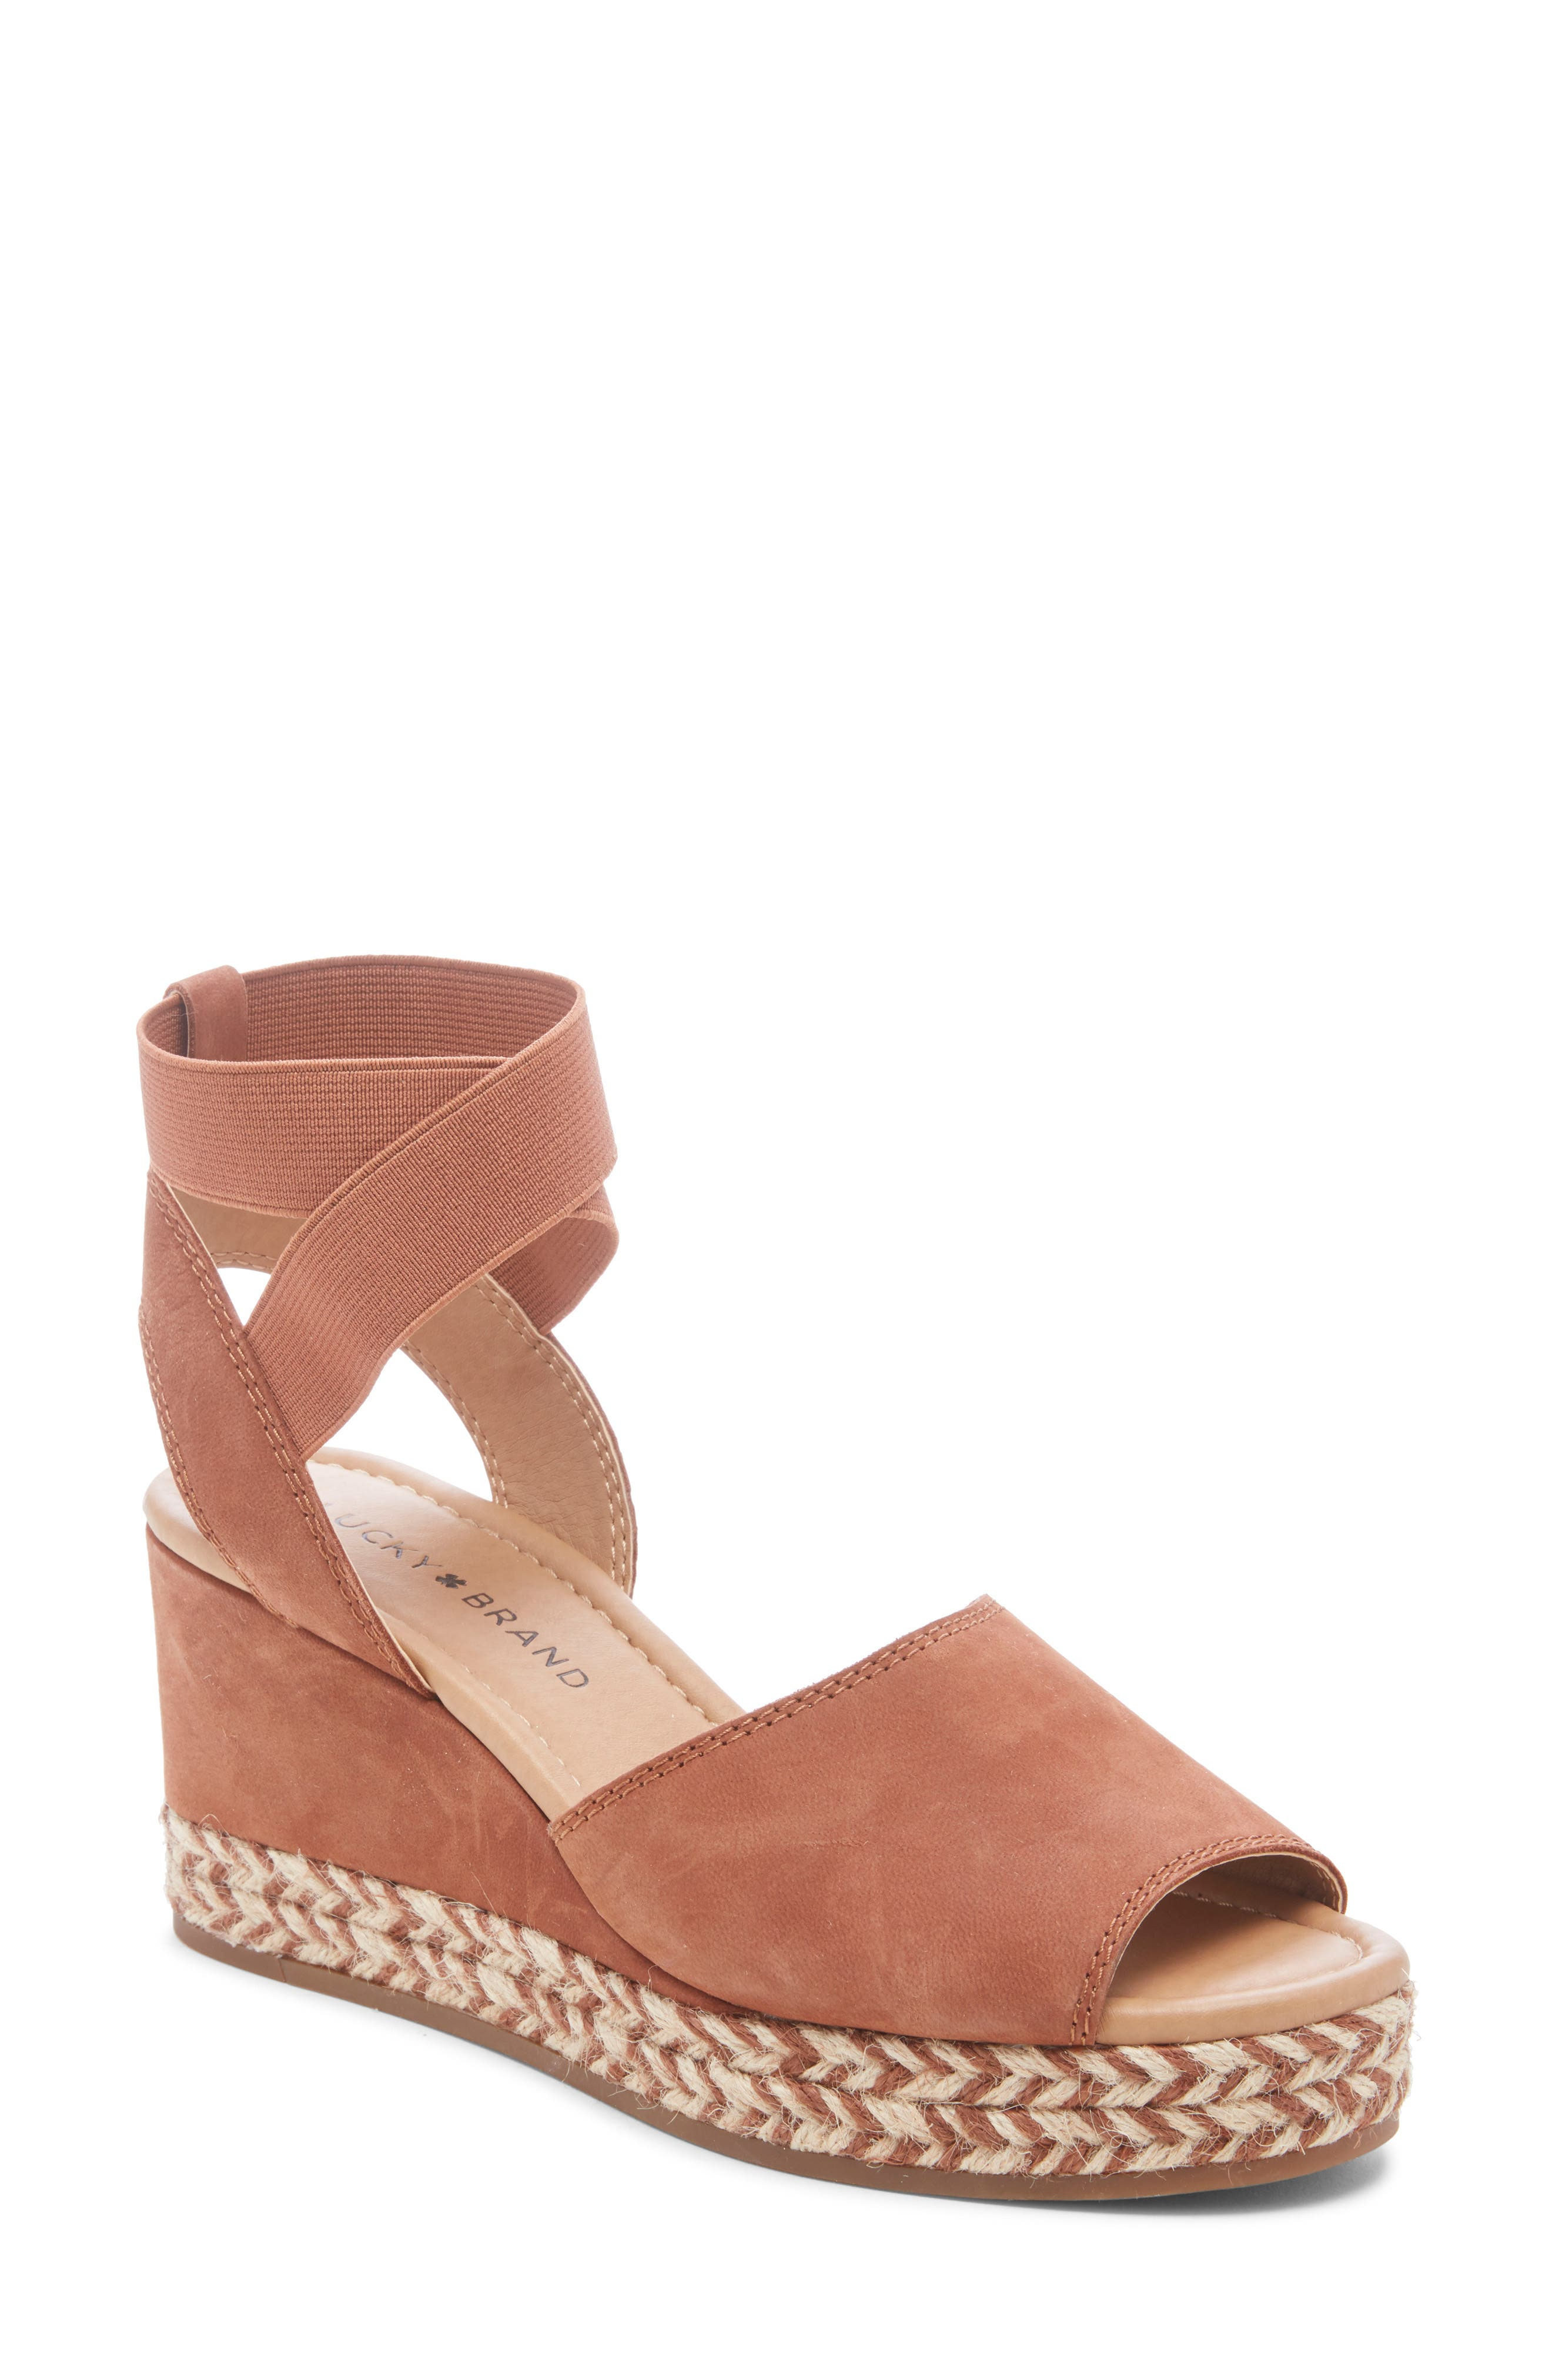 Lucky Brand Bettanie Espadrille Wedge Sandal, Brown